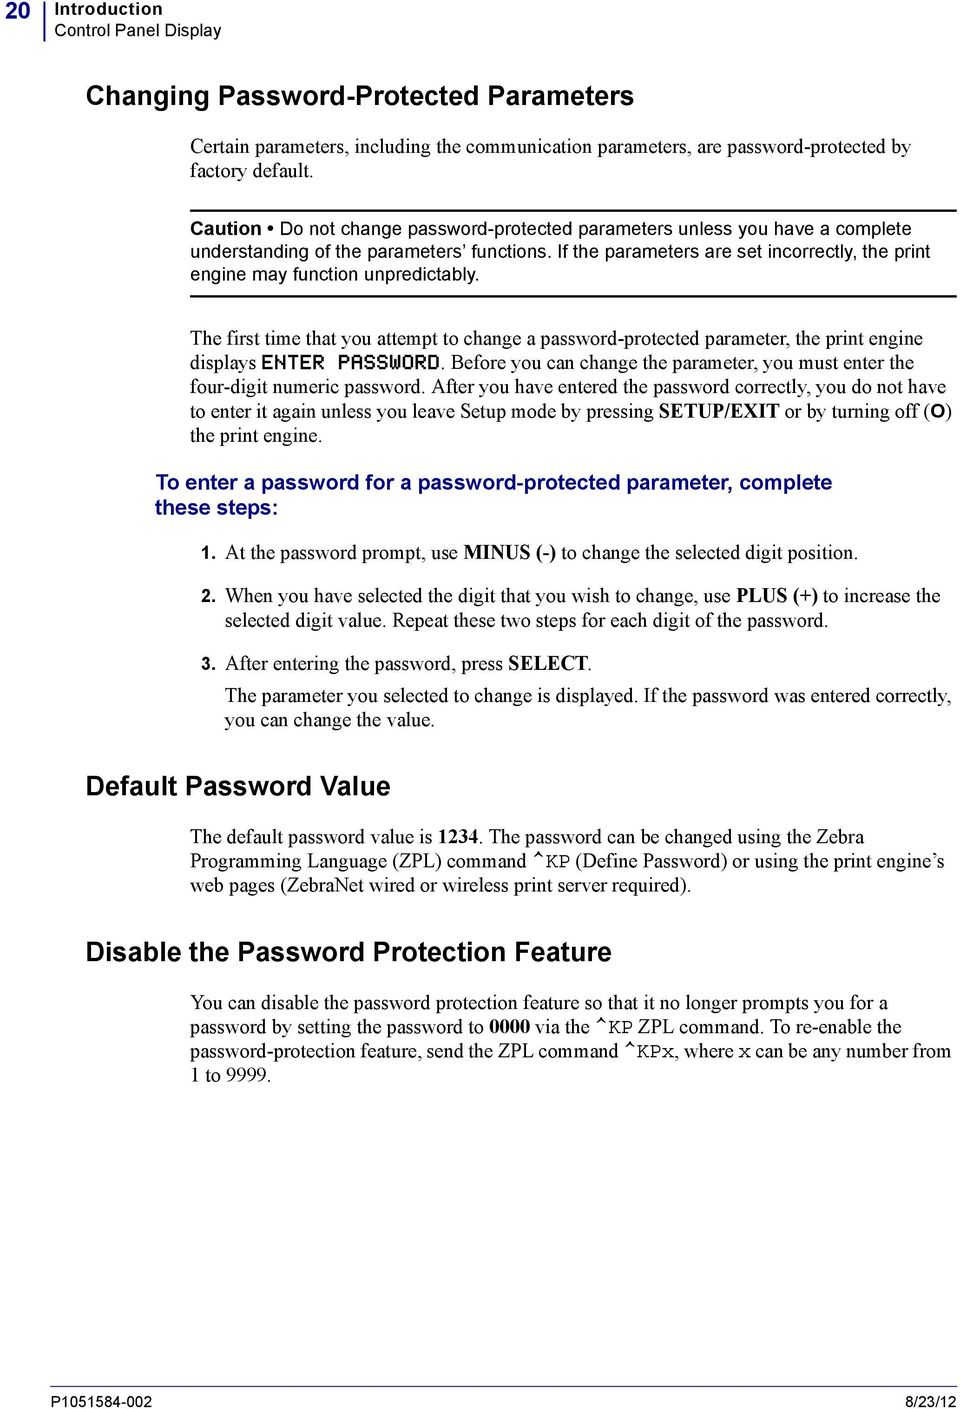 If the parameters are set incorrectly, the print engine may function unpredictably. The first time that you attempt to change a password-protected parameter, the print engine displays ENTER PASSWORD.